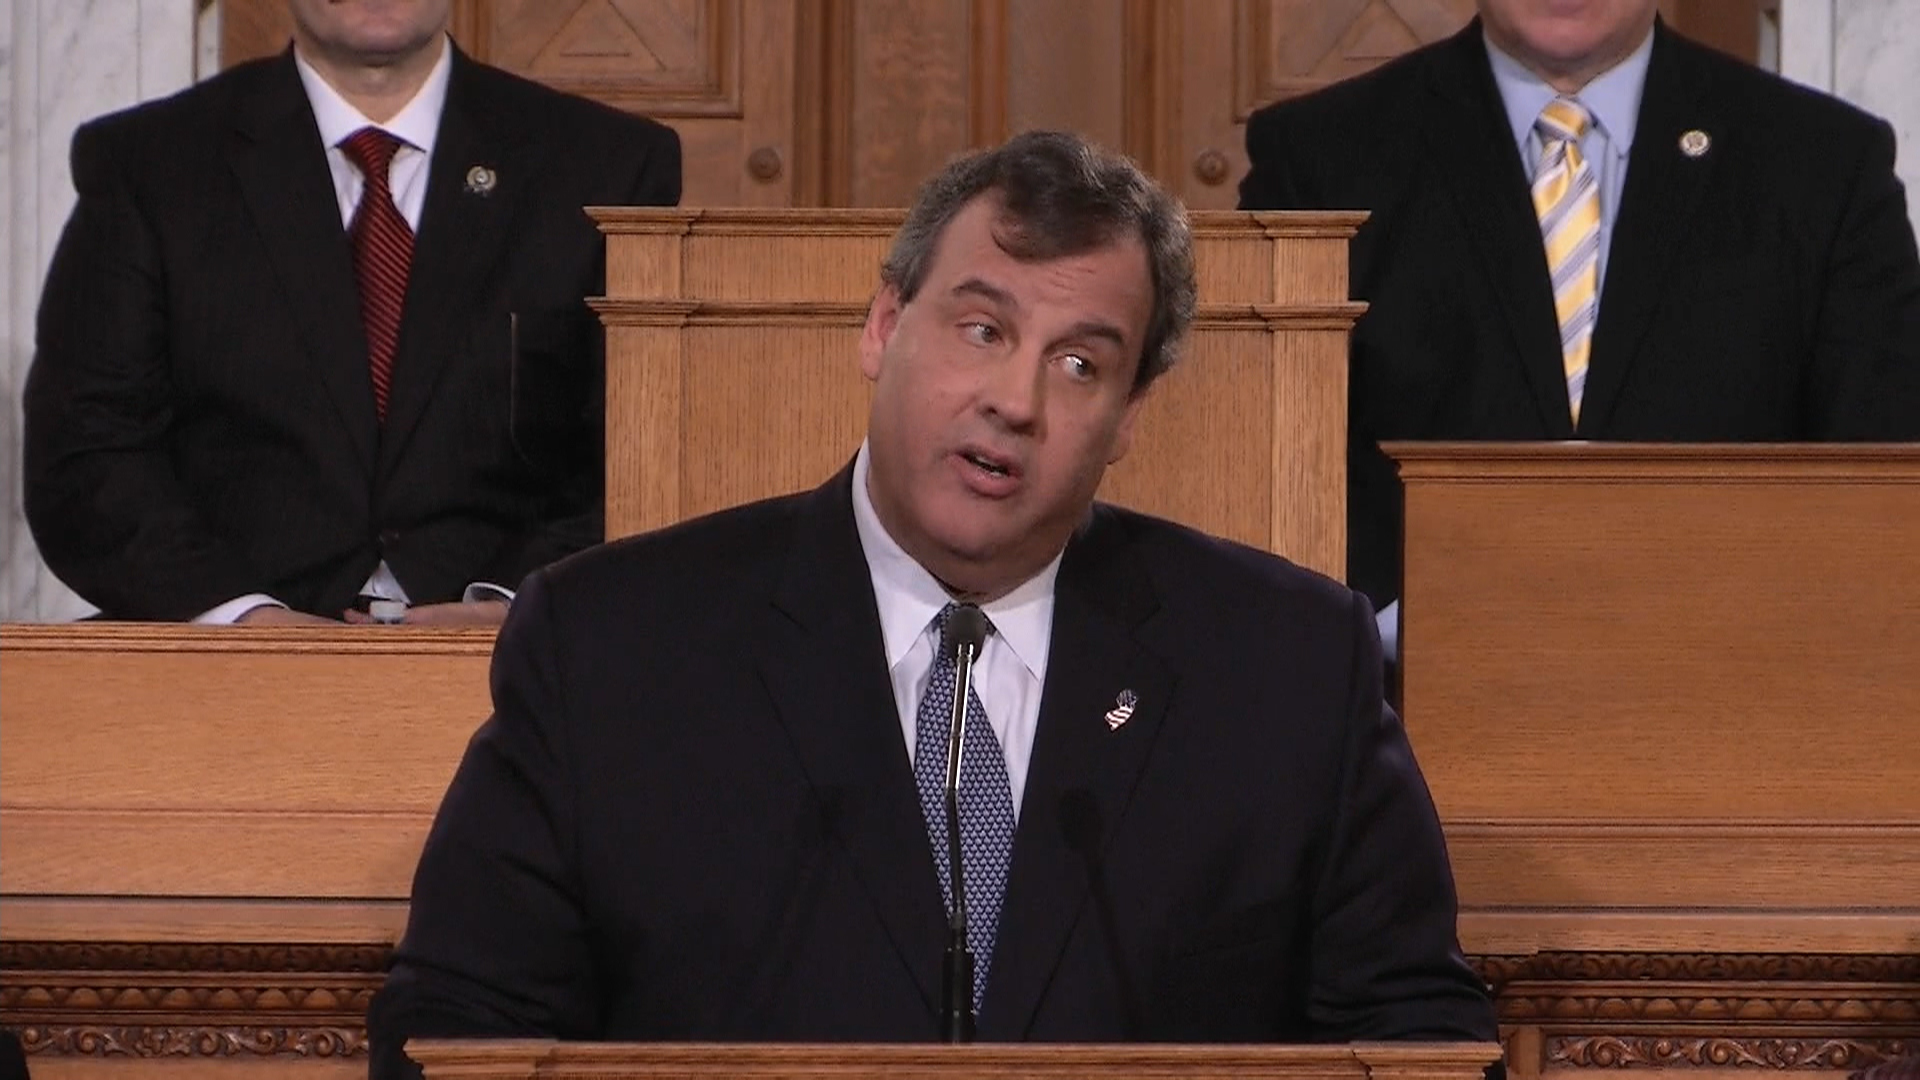 The state of Christie's scandal